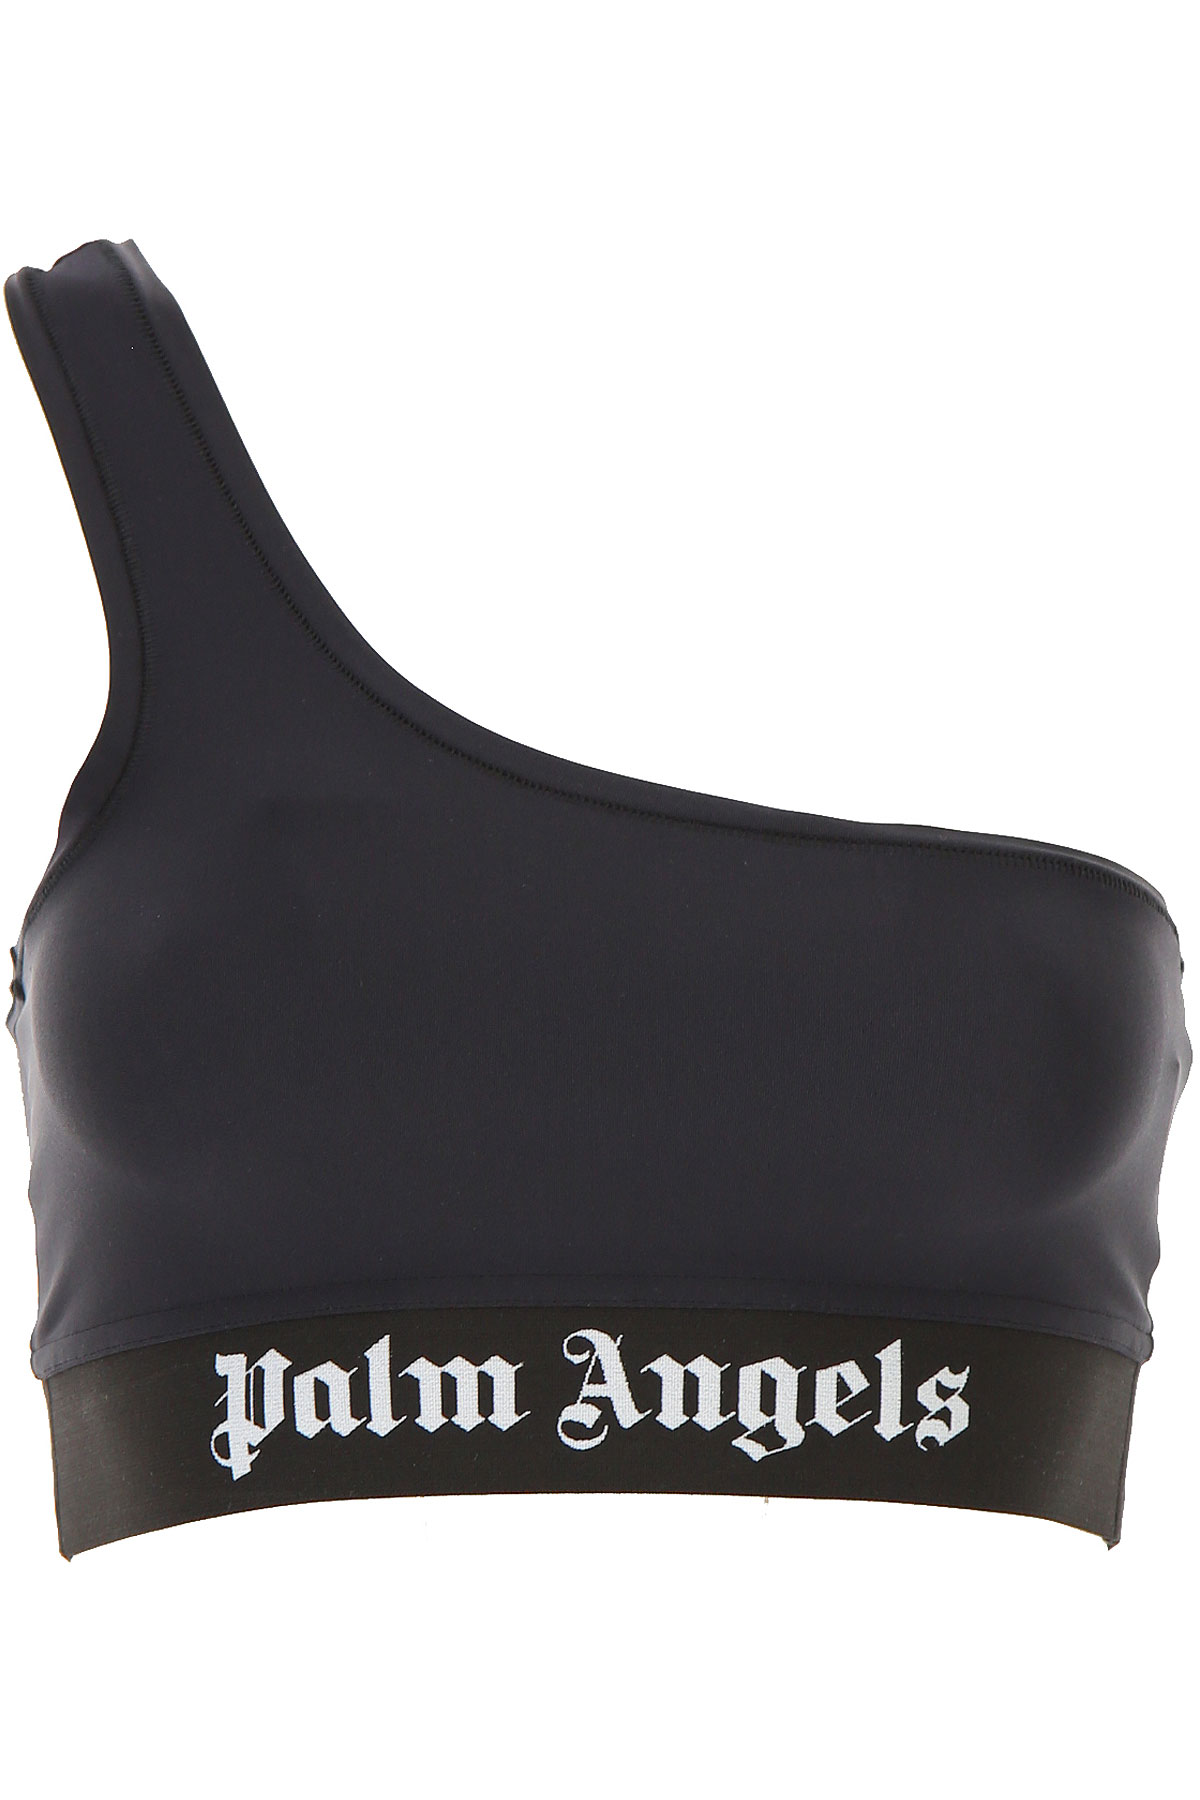 Palm Angels Top for Women On Sale, Black, polyamide, 2019, 2 6